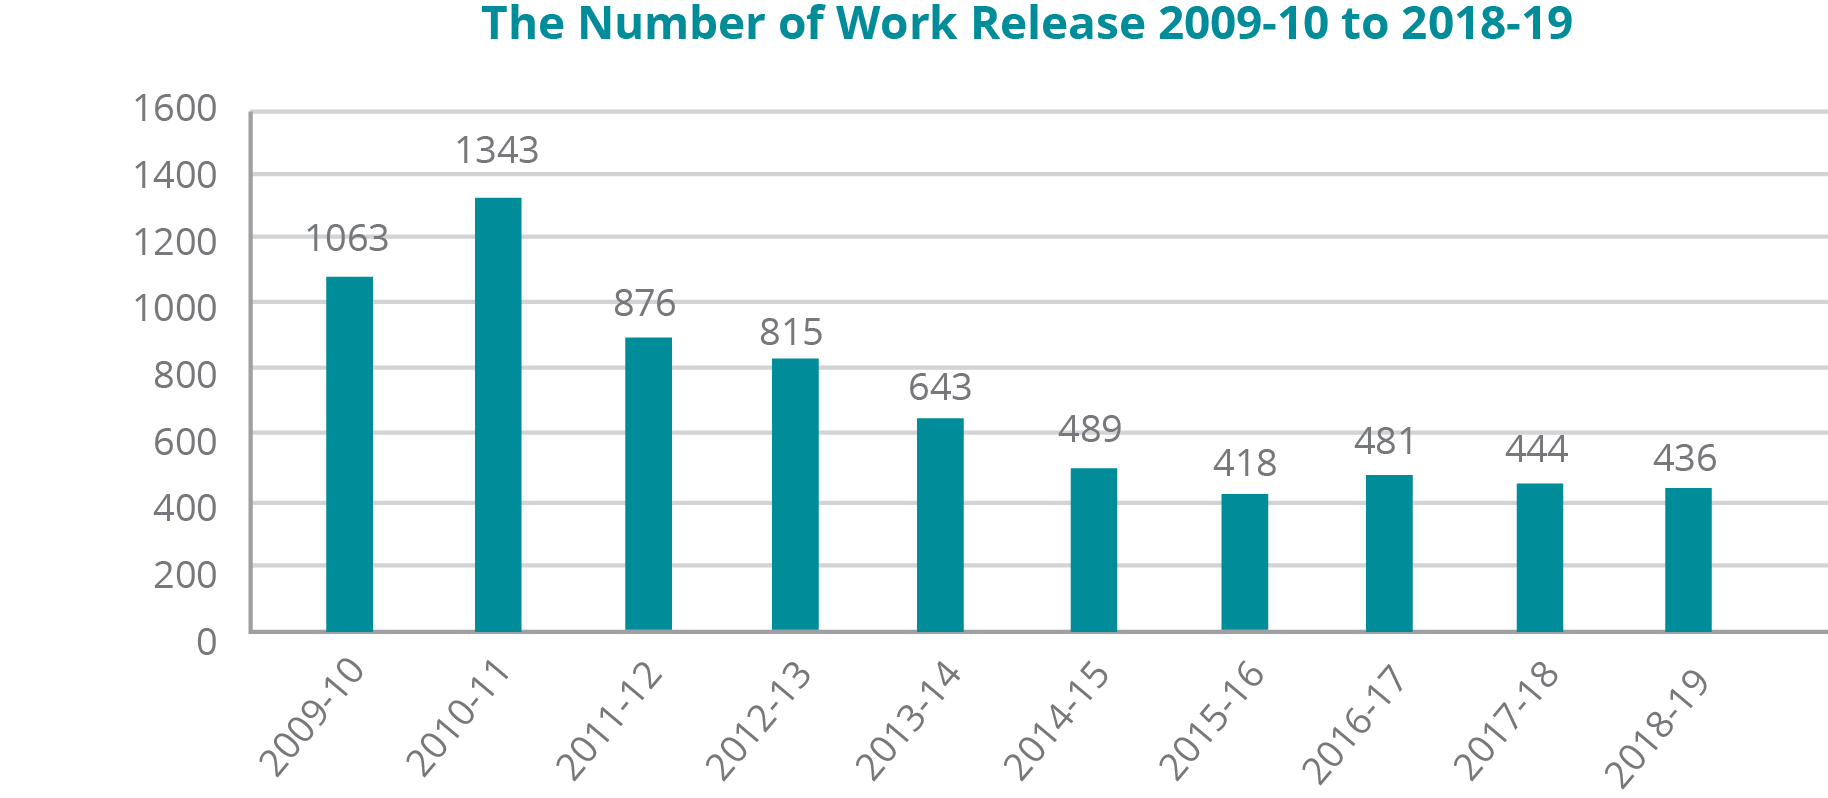 A graph depicting the number of Work Releases from fiscal years 2009-10 to 2018-19: -	In 2009-10, there were 1063. -	In 2010-11, there were 1343. -	In 2011-12, there were 876. -	In 2012-13, there were 815. -	In 2013-14, there were 643. -	In 2014-15, there were 489. -	In 2015-16, there were 418. -	In 2016-17, there were 481. -	In 2017-18, there were 444. -	In 2018-19, there were 436.